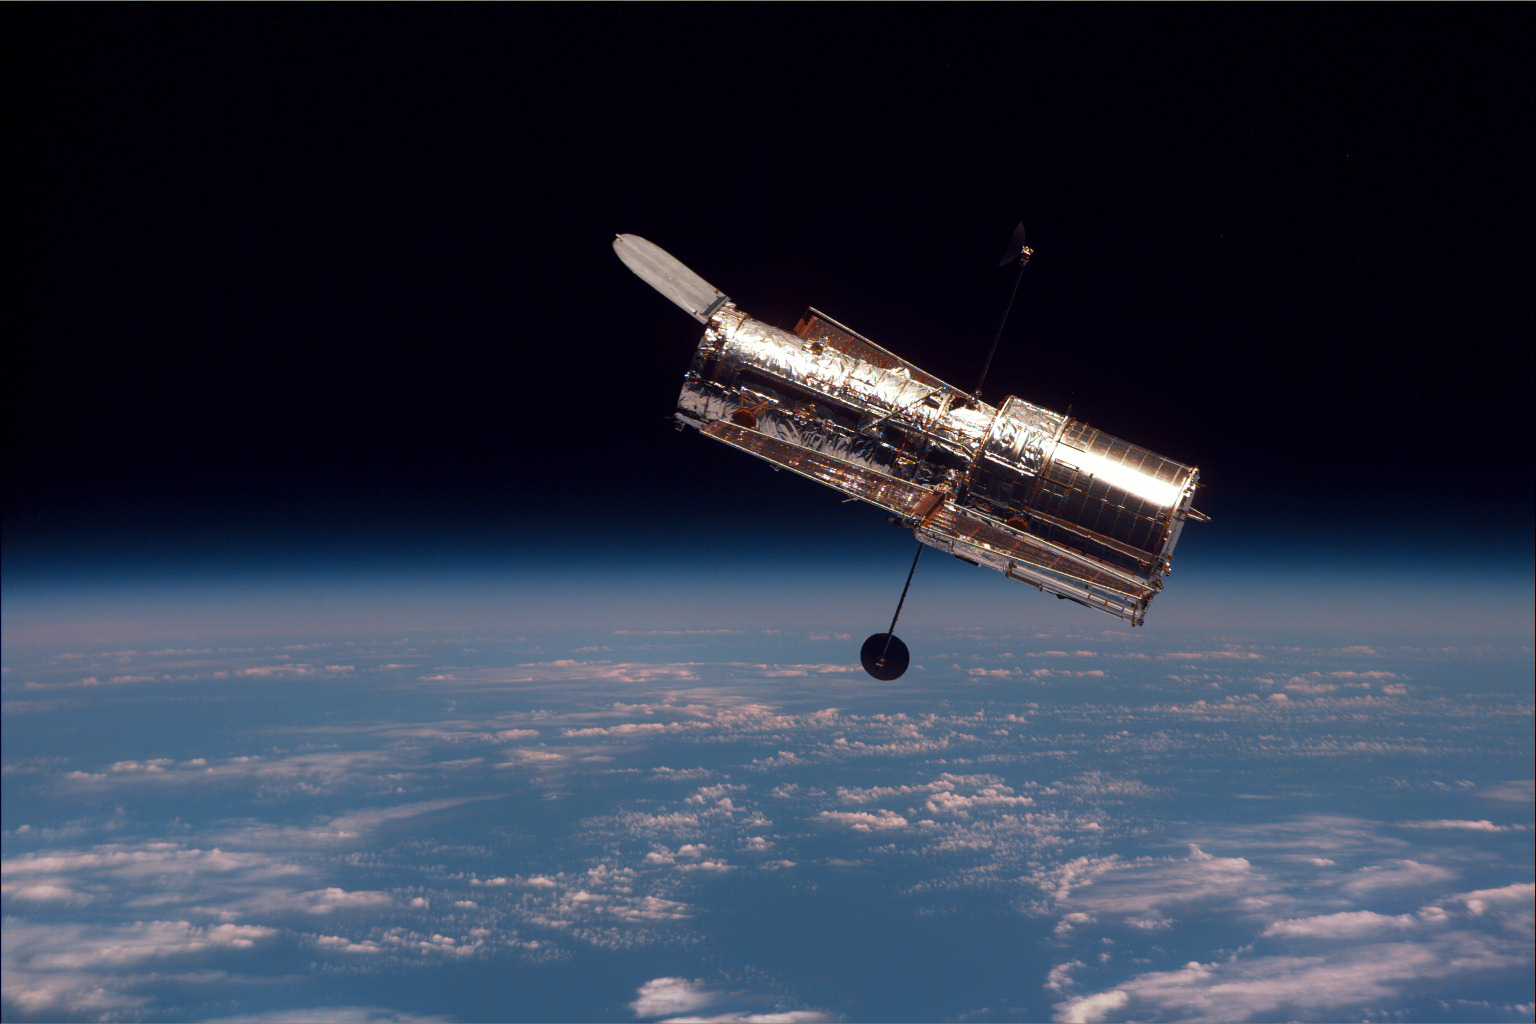 File:Hubble 01.jpg - Wikipedia